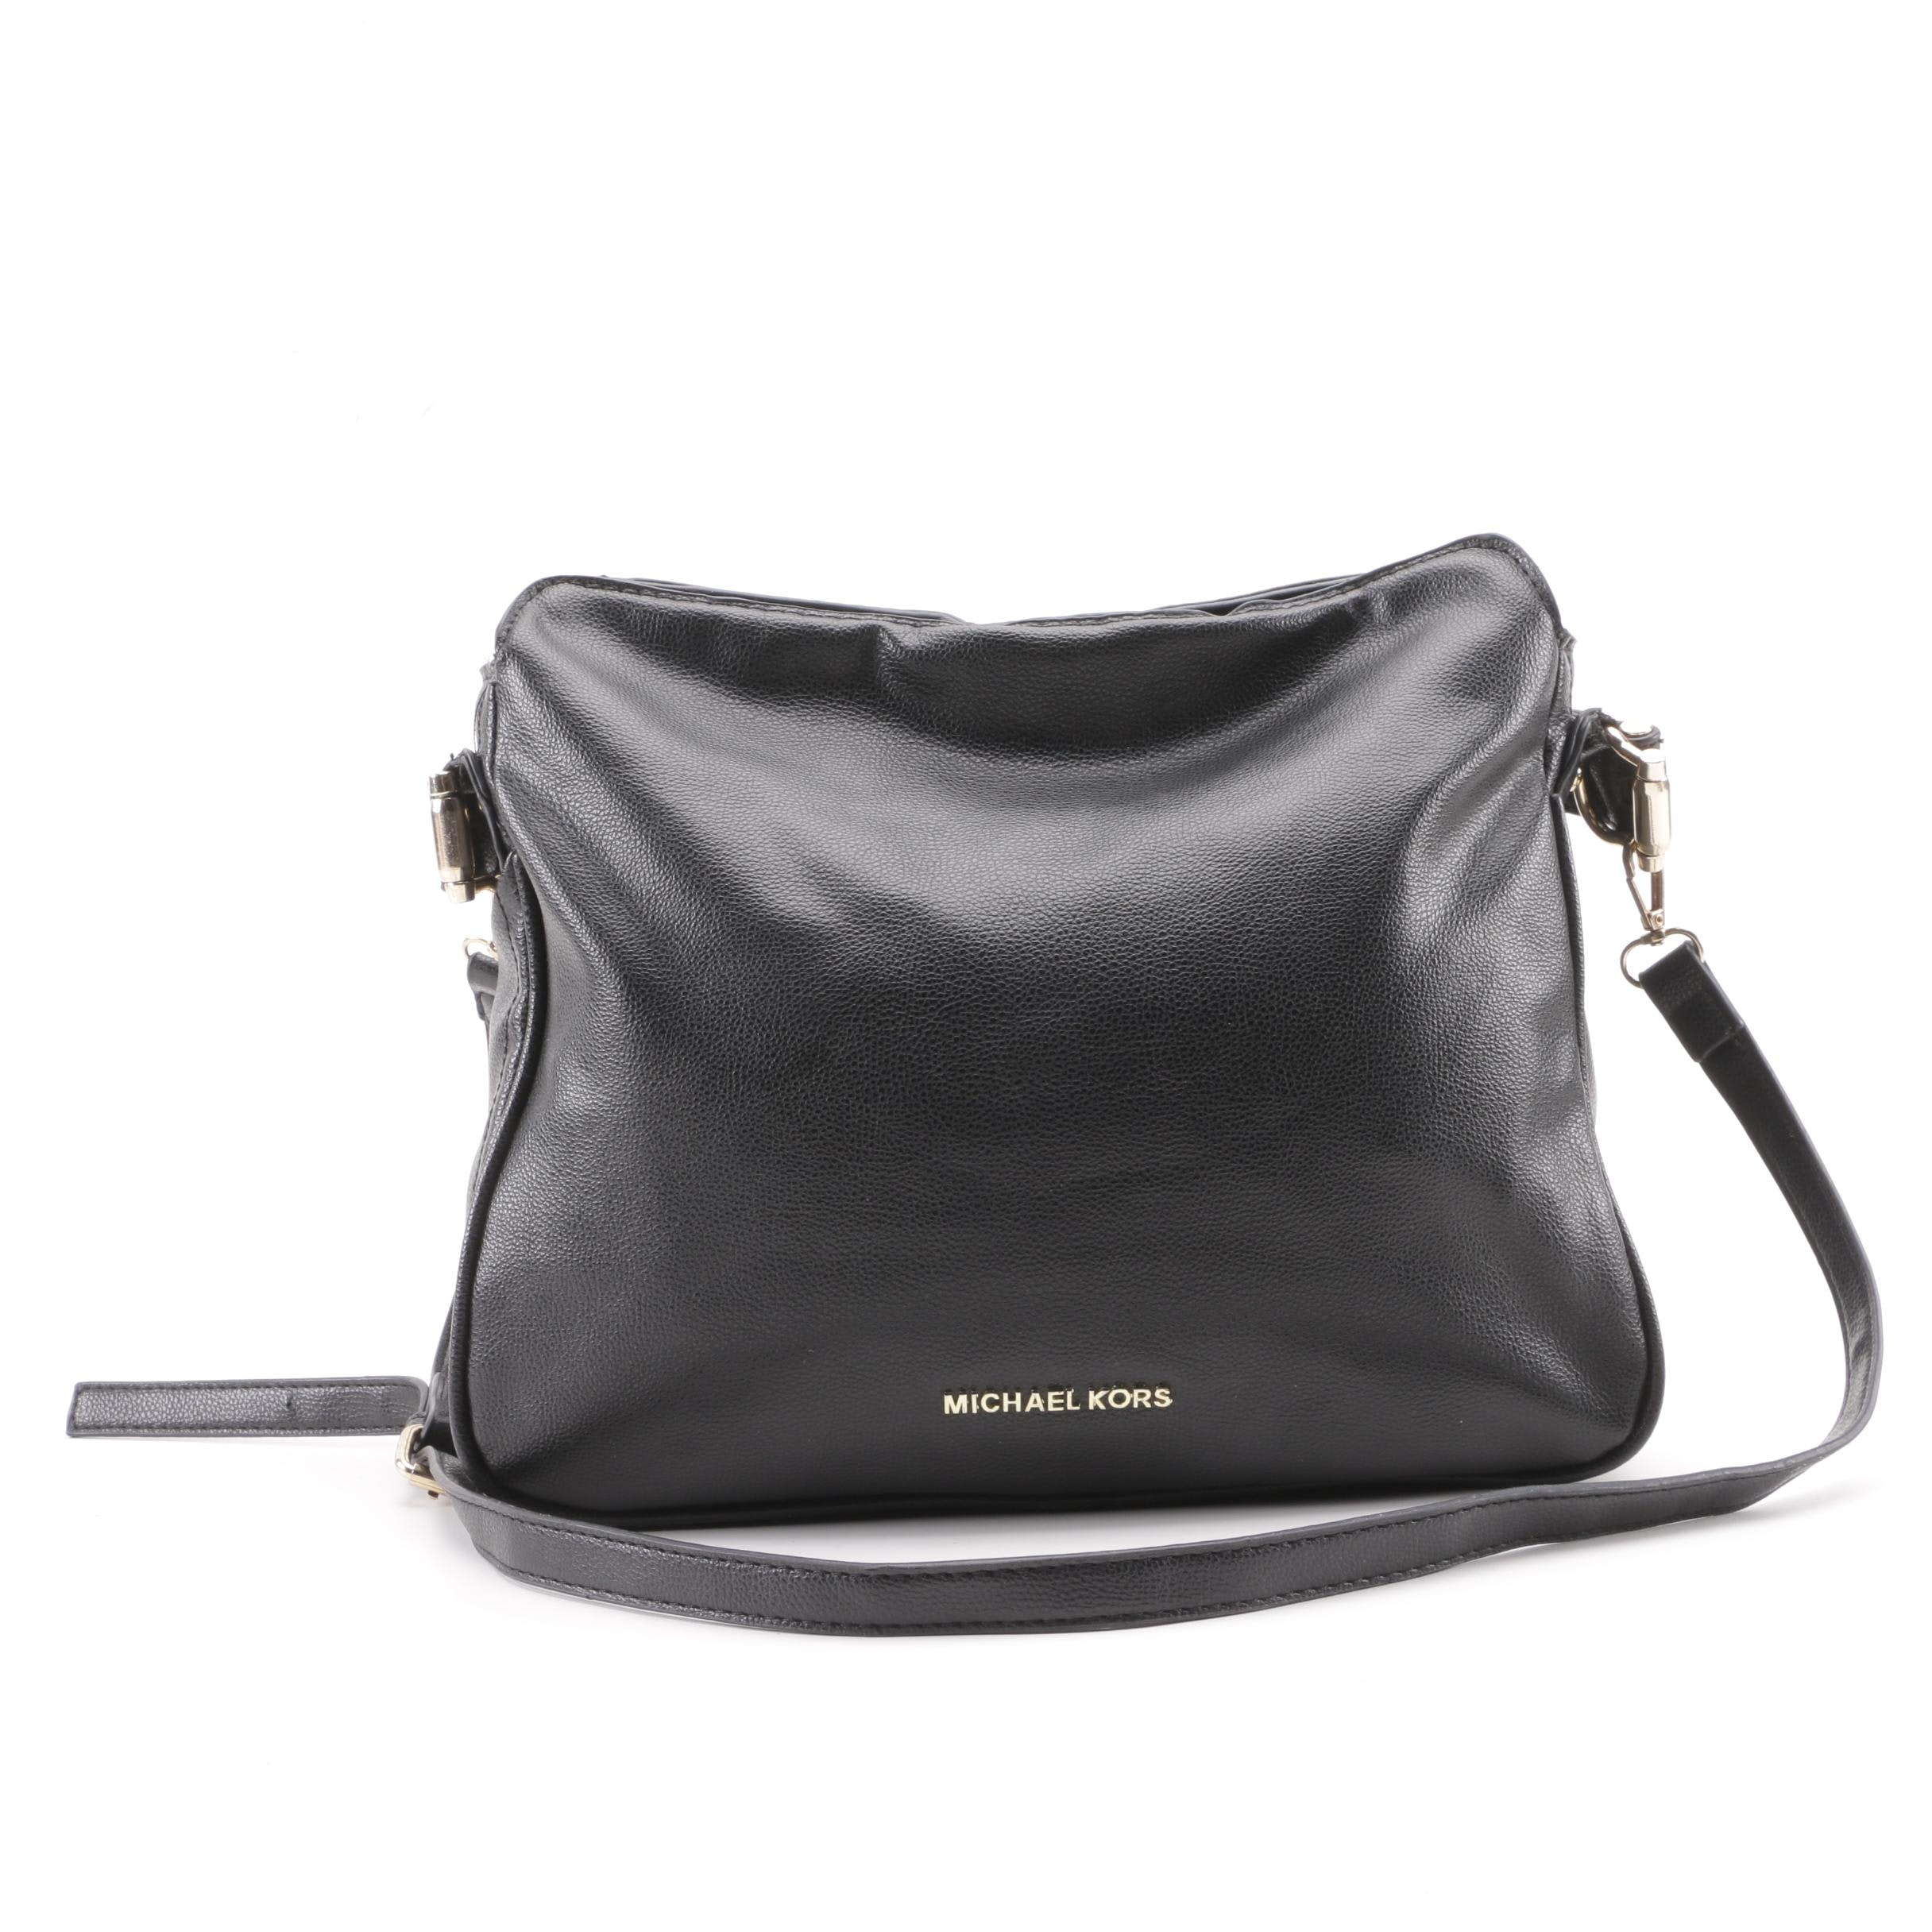 MK Michael Kors Black Leather Shoulder Bag